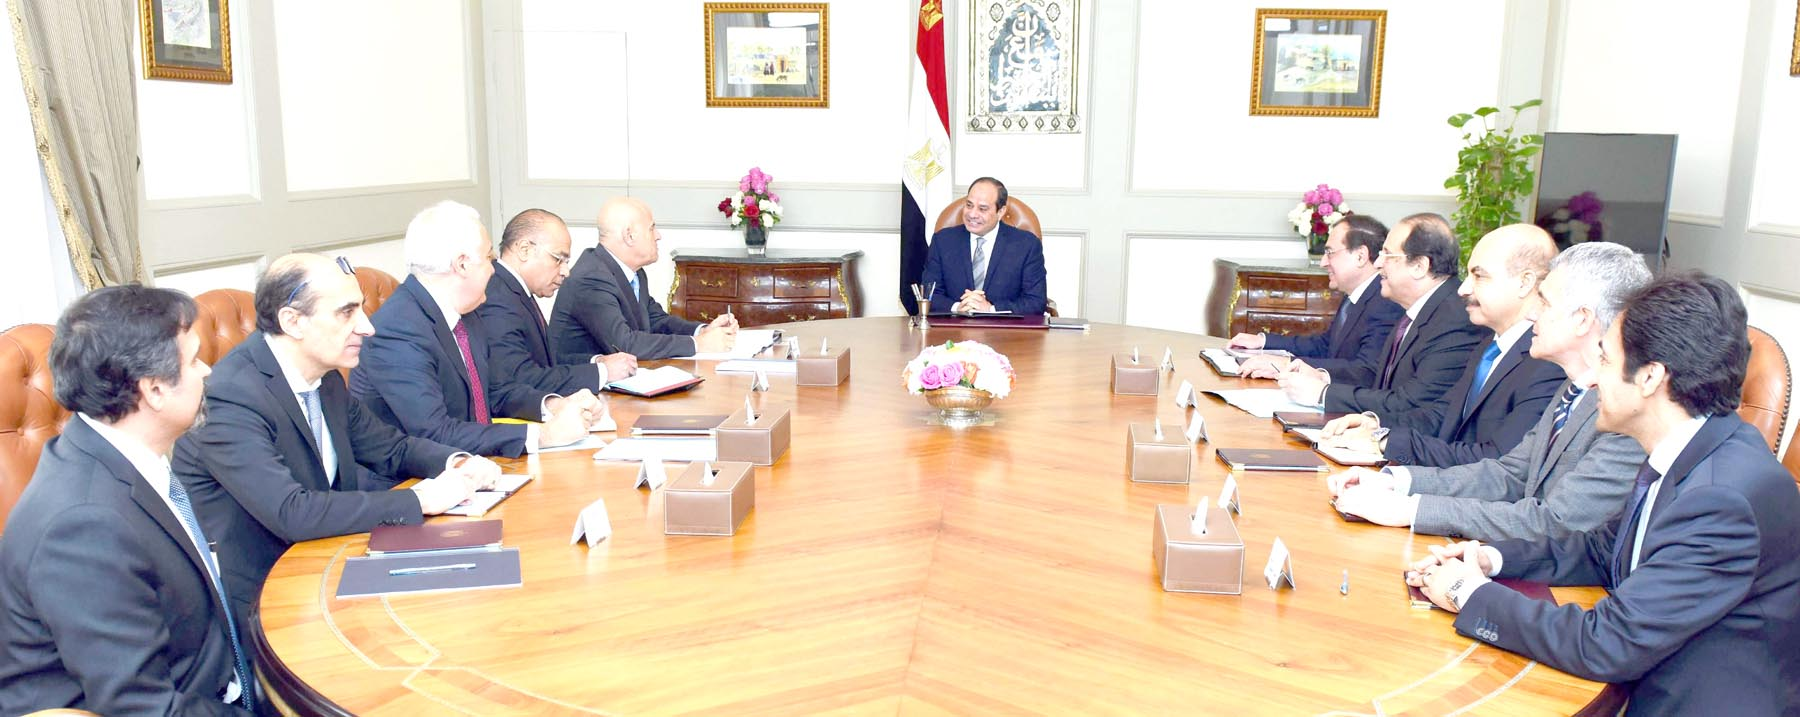 Rising potential. Egyptian President Abdel Fattah al-Sisi (C) meeting with Eni CEU Claudio Descalzi (top L) in Cairo, January 16.   (AFP)